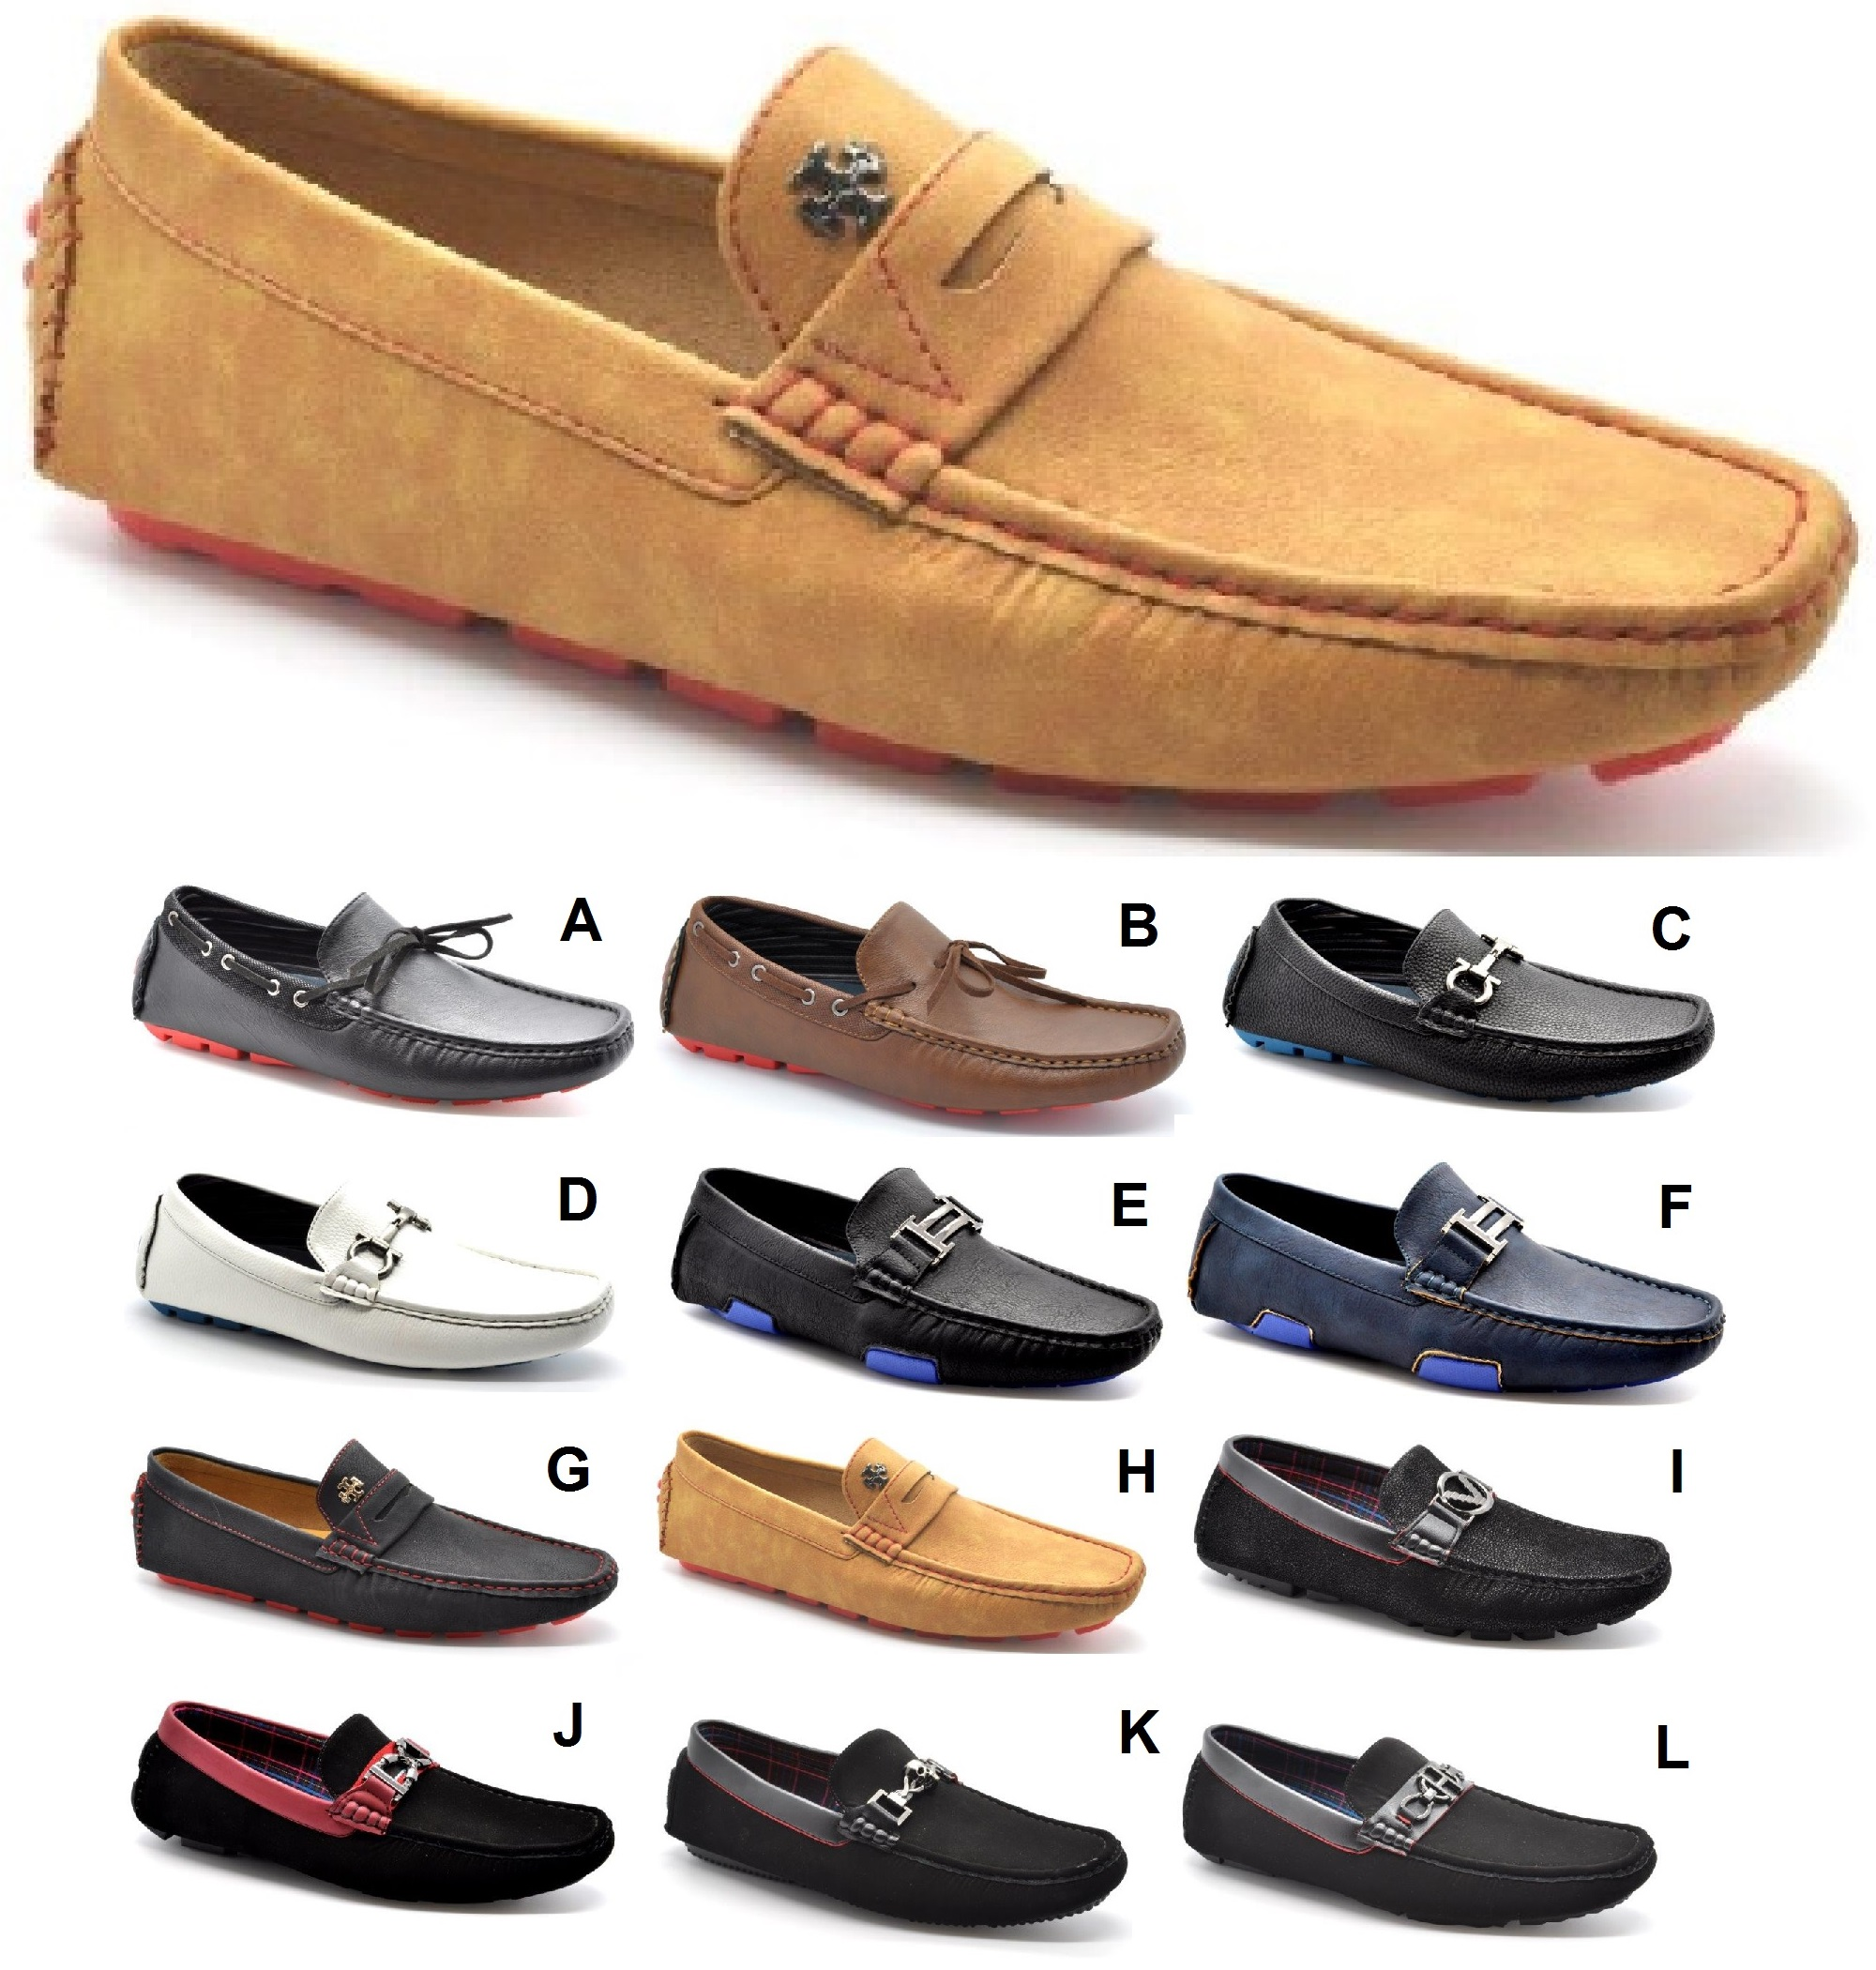 BOYS MENS NEW TASSEL DESIGNER FLAT SLIP ON FORT CASUAL ITALIAN